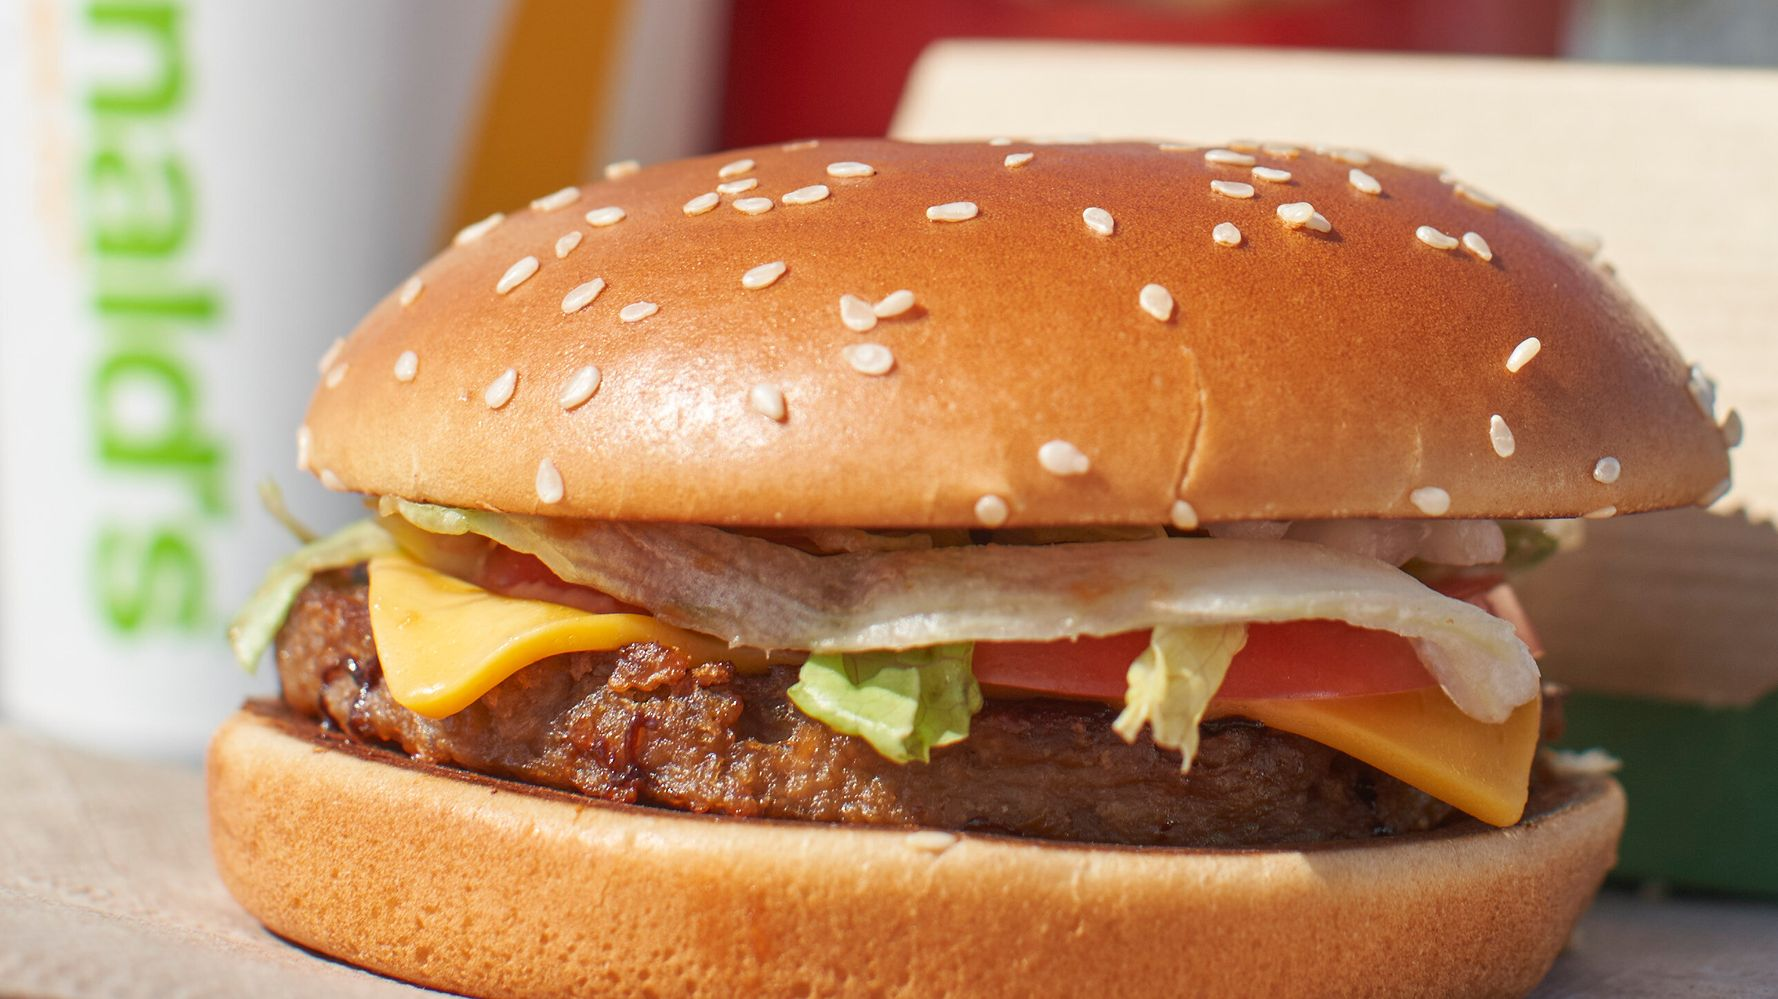 McDonald's Unveils Its Own Meatless Burger, The McPlant